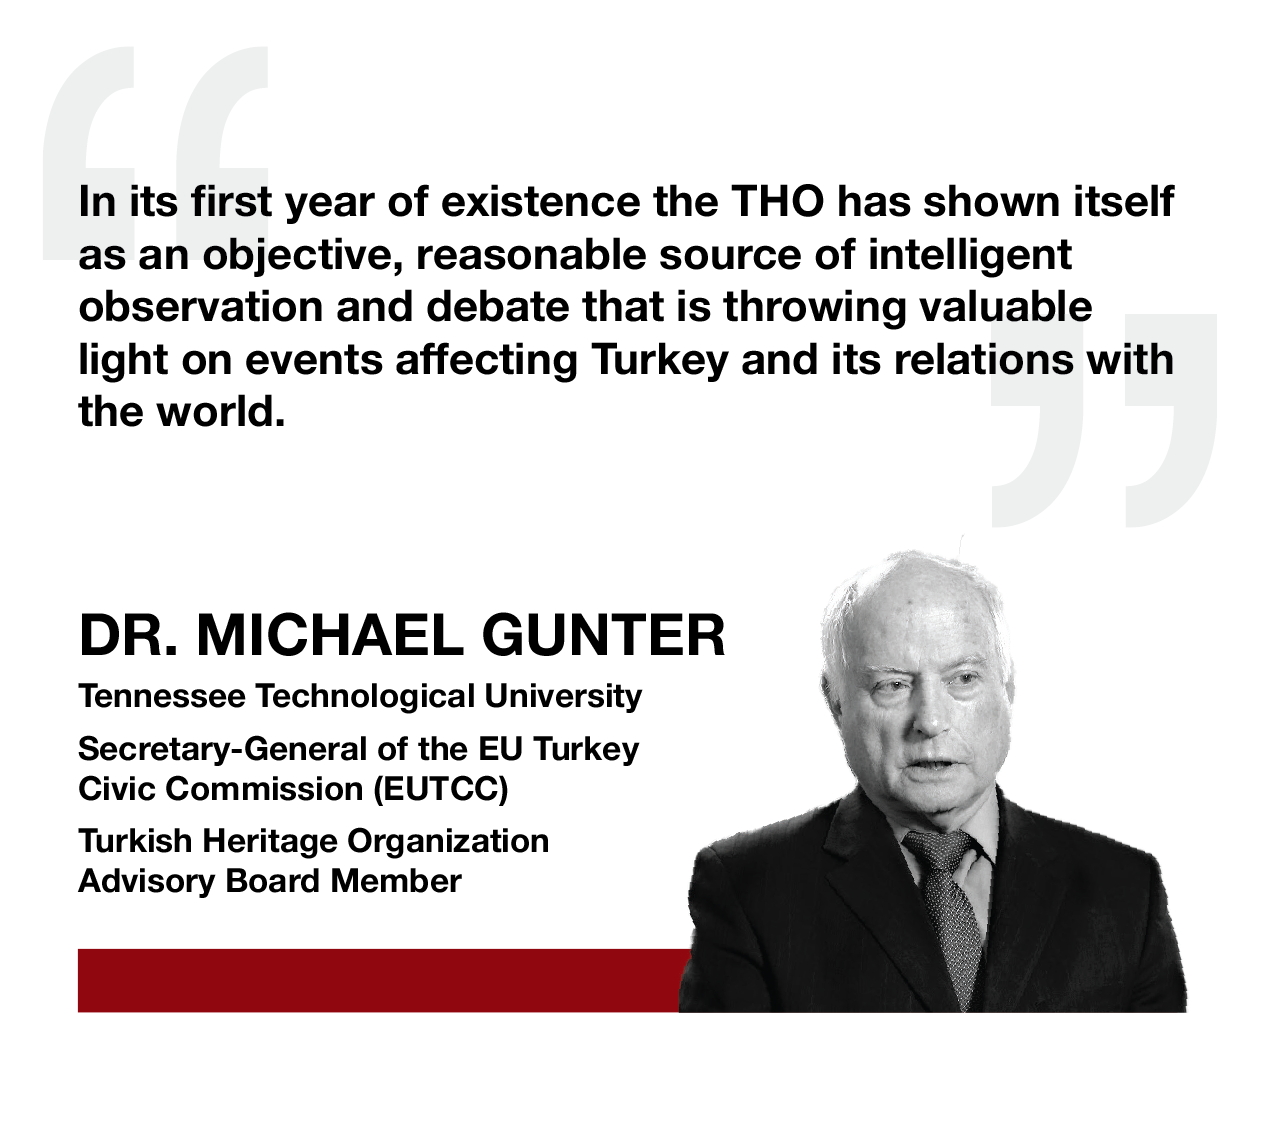 DR. MICHAEL GUNTER, Tennessee Technological University, Secretary-General of the EU Turkey Civic Commission (EUTCC), Turkish Heritage Organization-Advisory Board Member